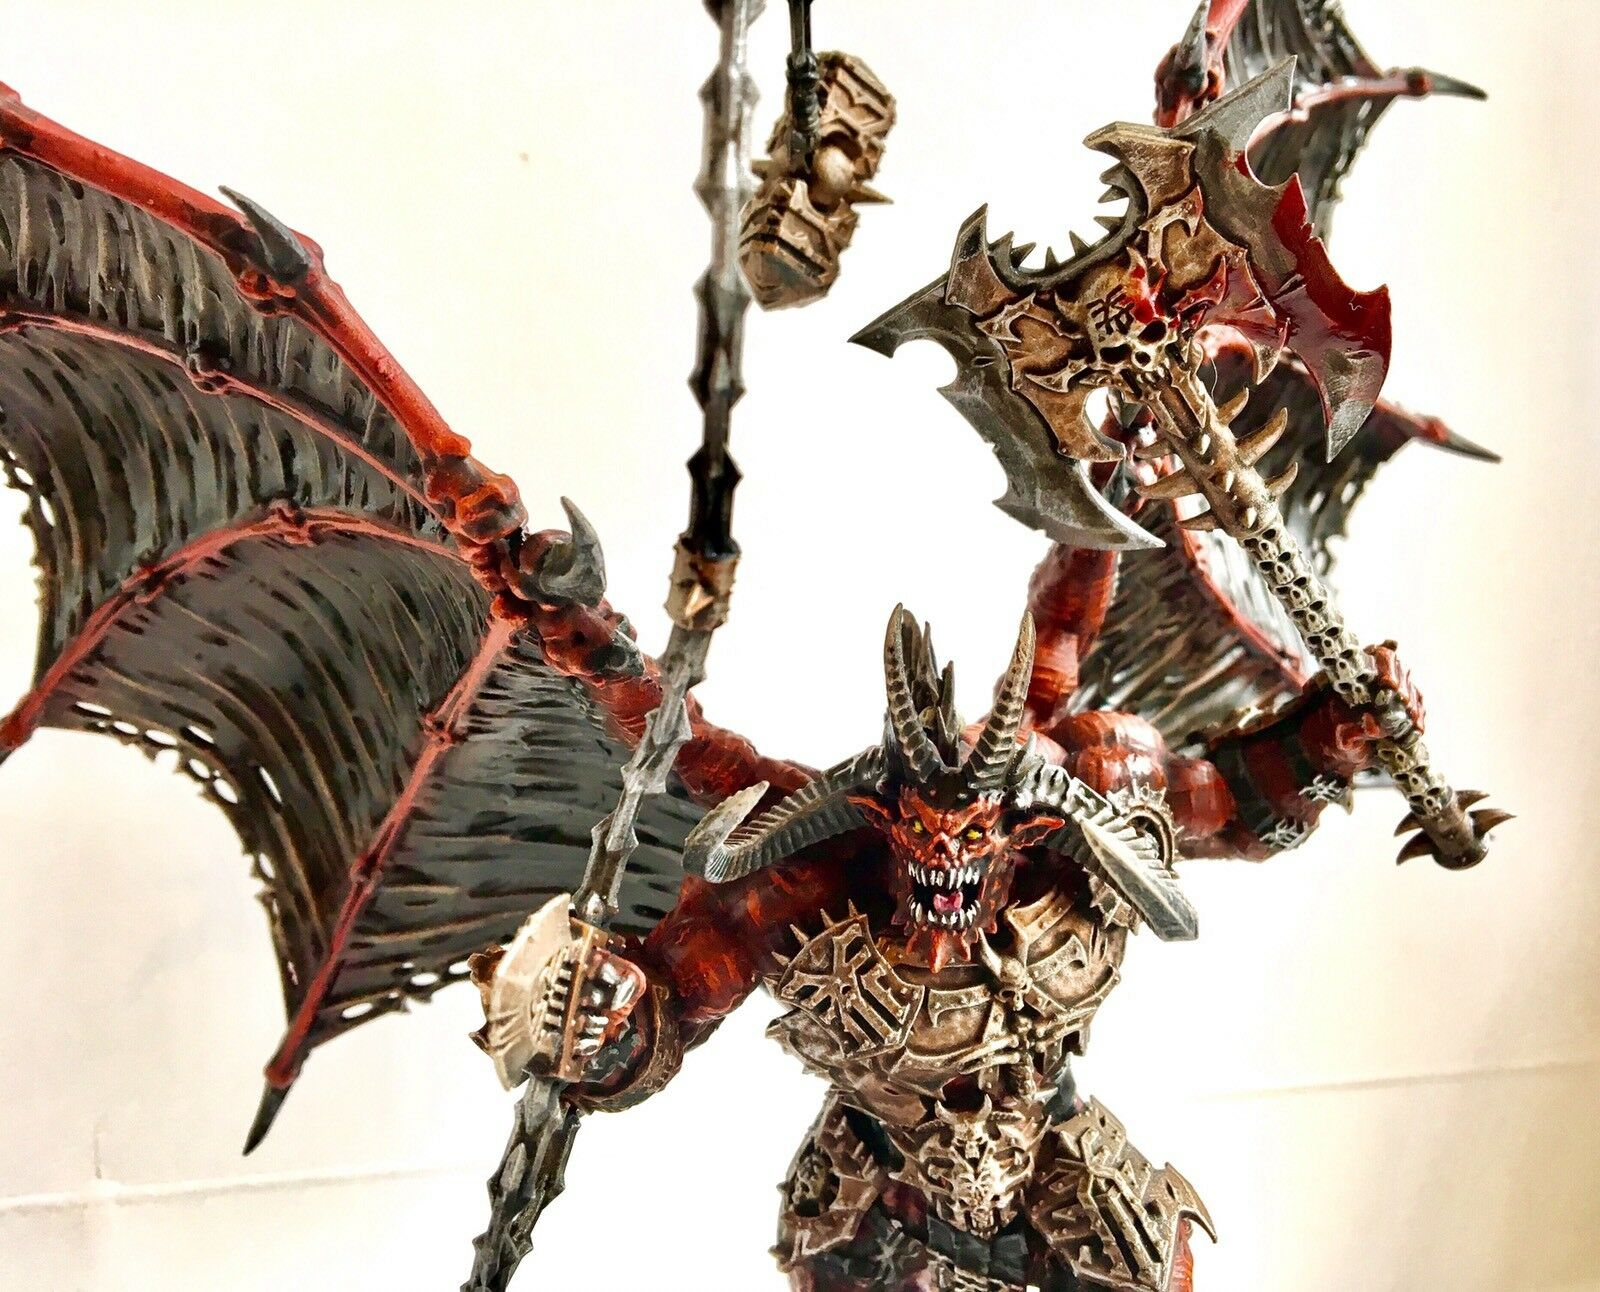 Khorne Bloodthirster Pro Painted Commission